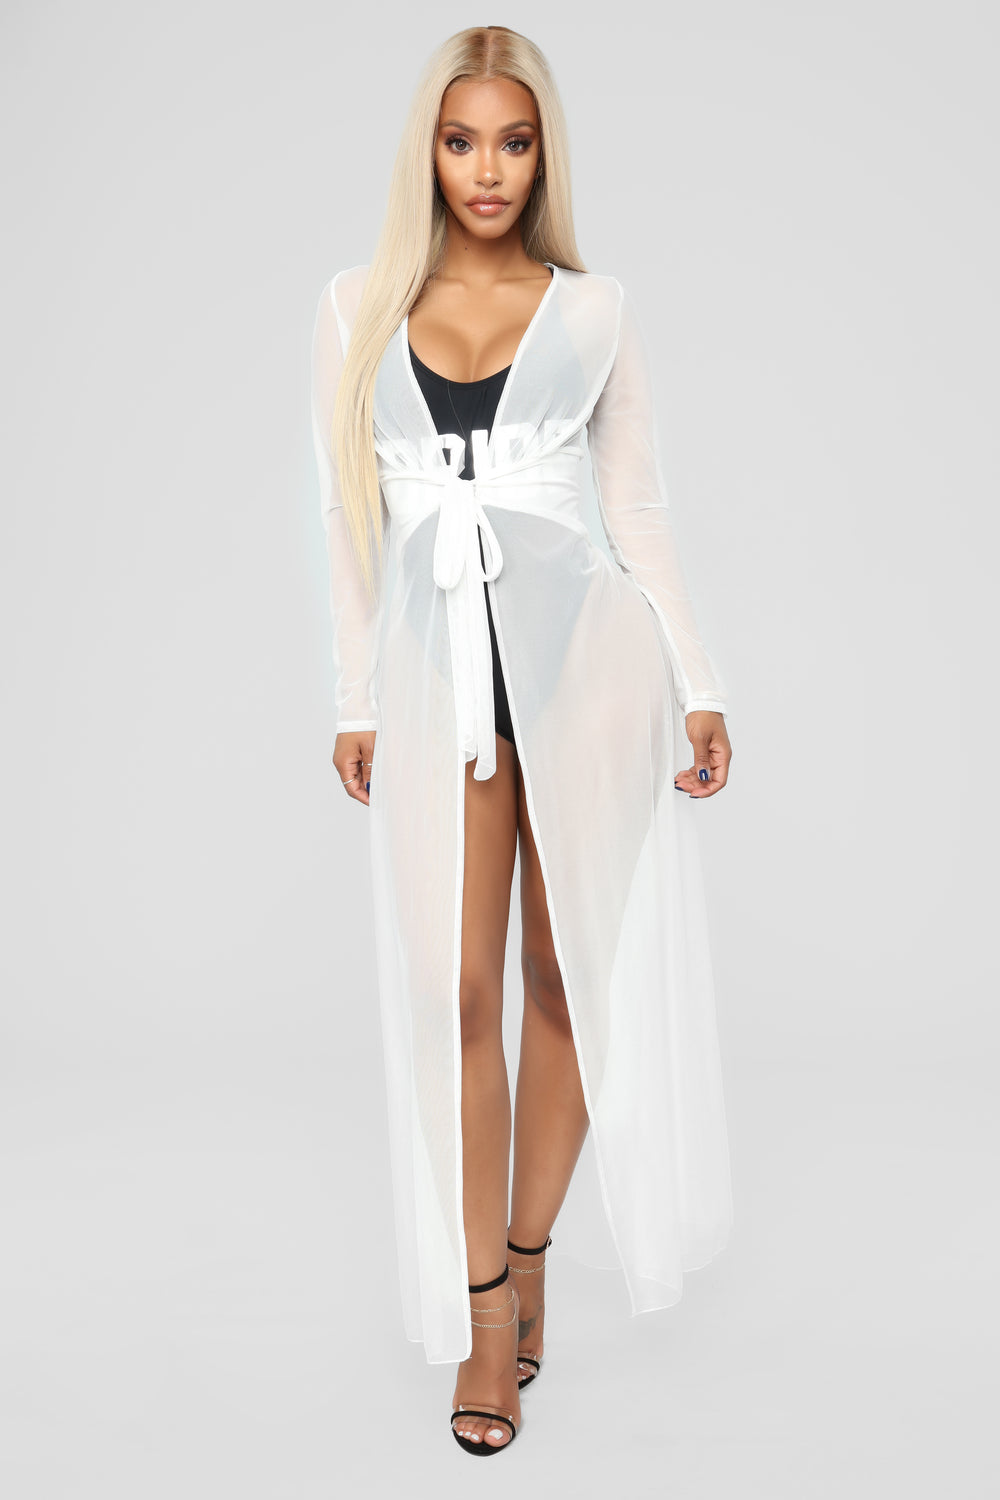 Old Flame Cover-Up Kimono - Off White